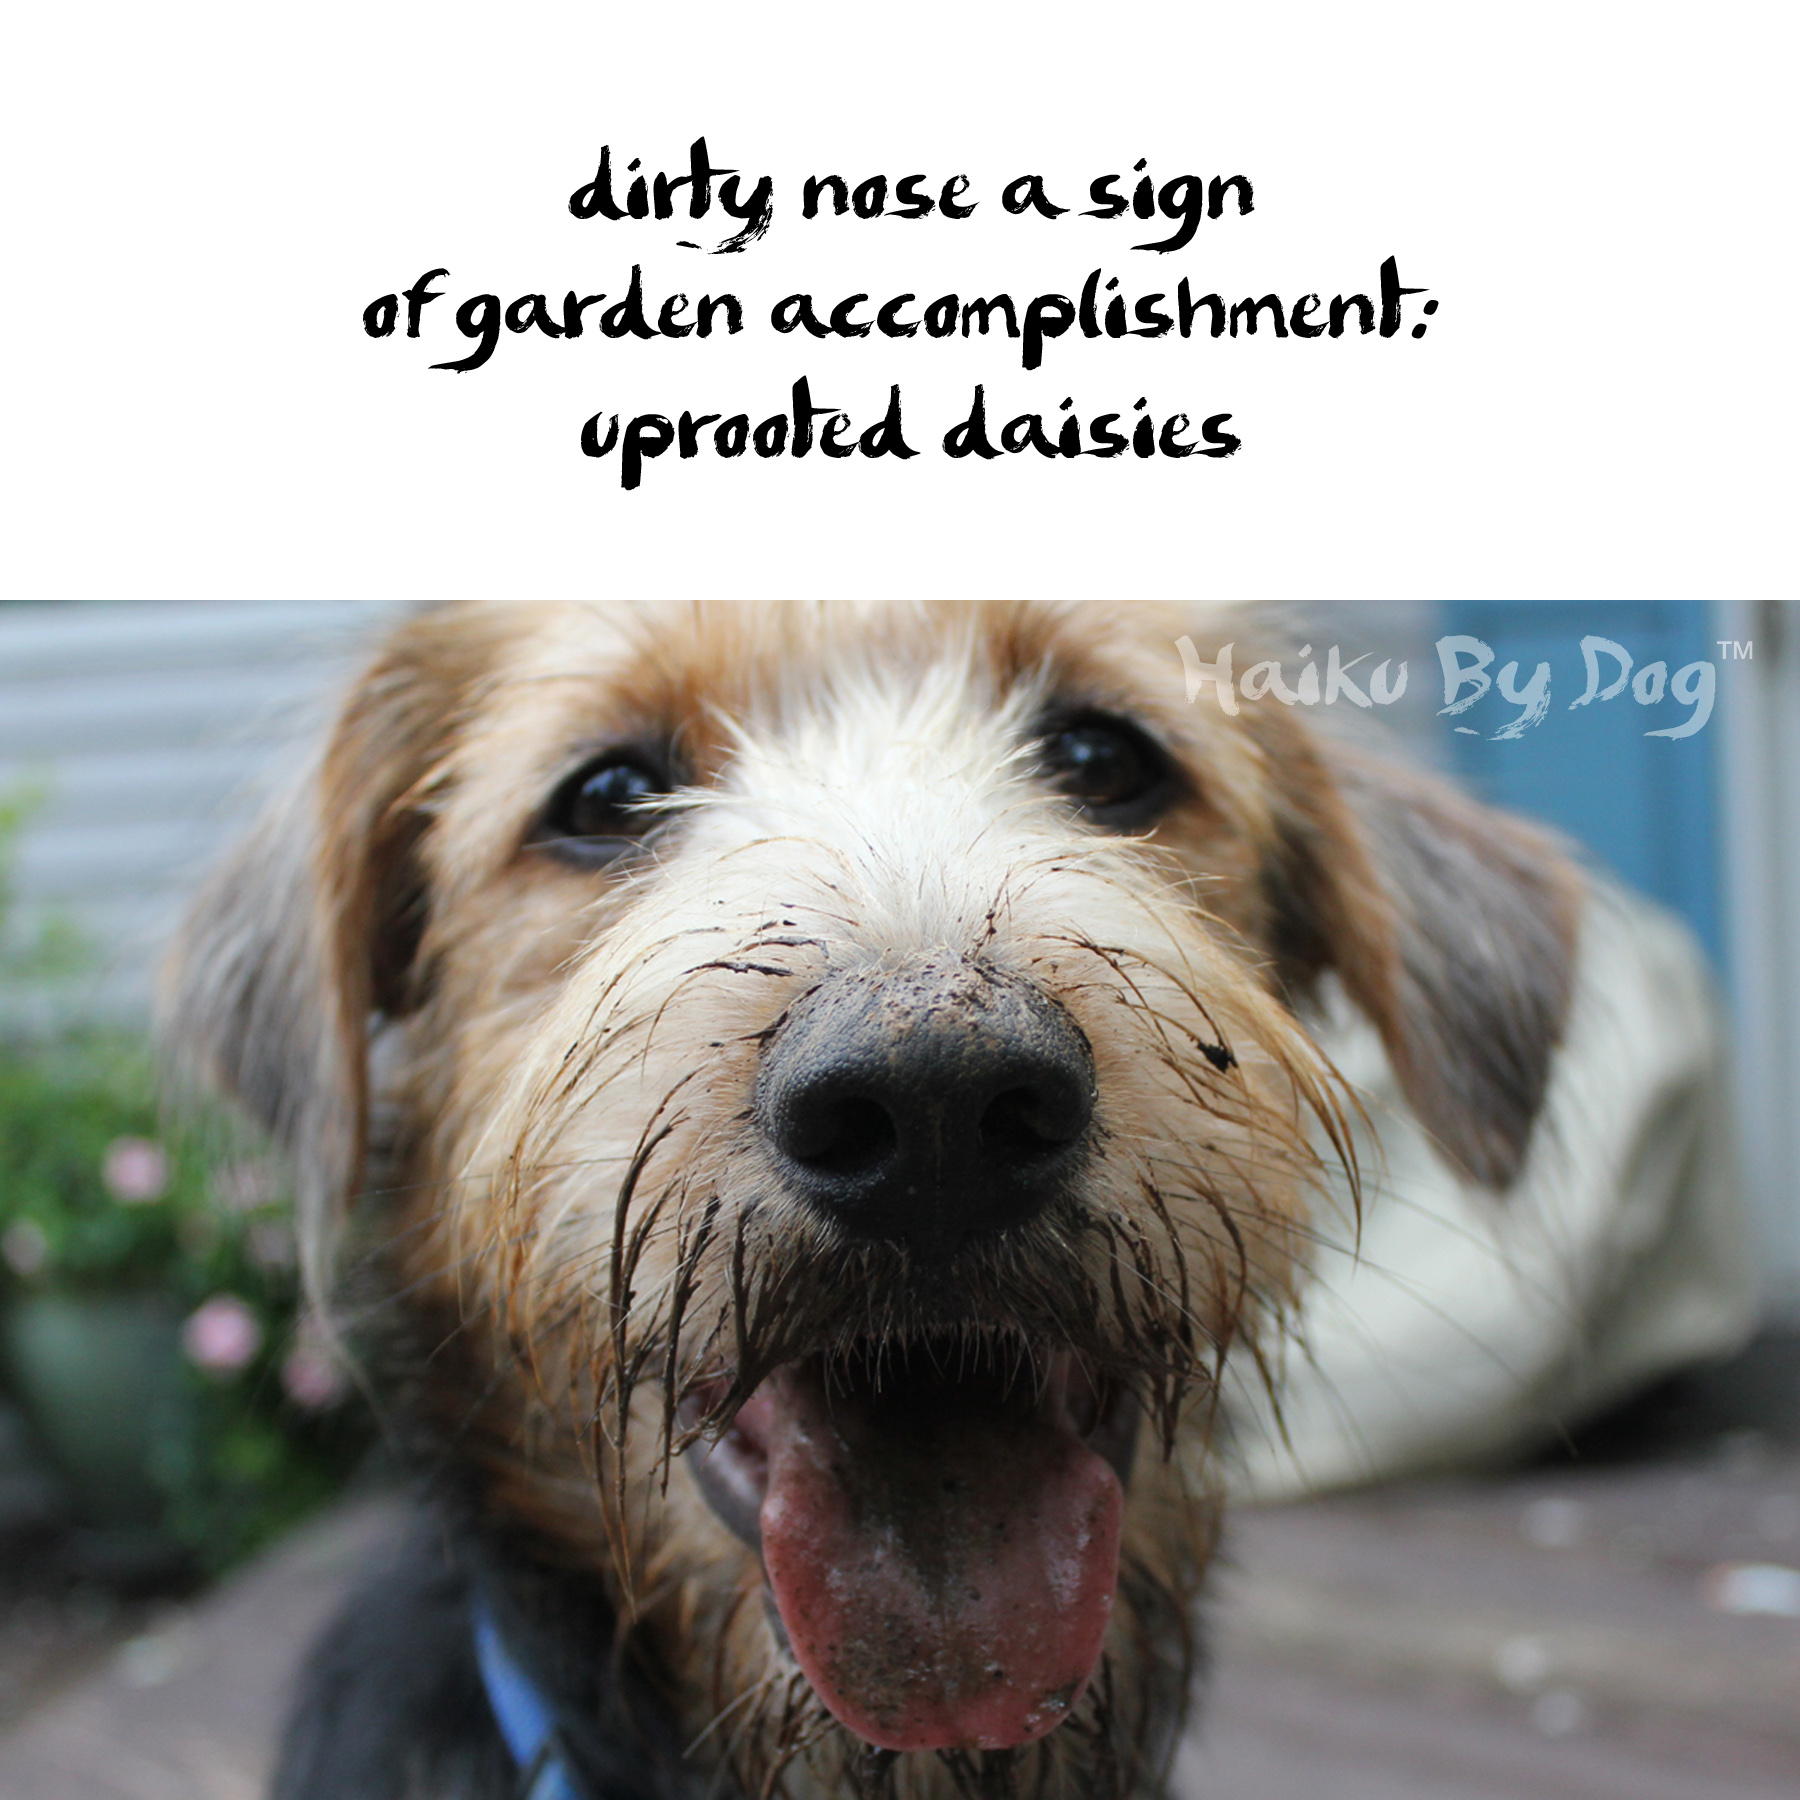 Haiku By Dog Accomplishment Life With Dogs And Cats